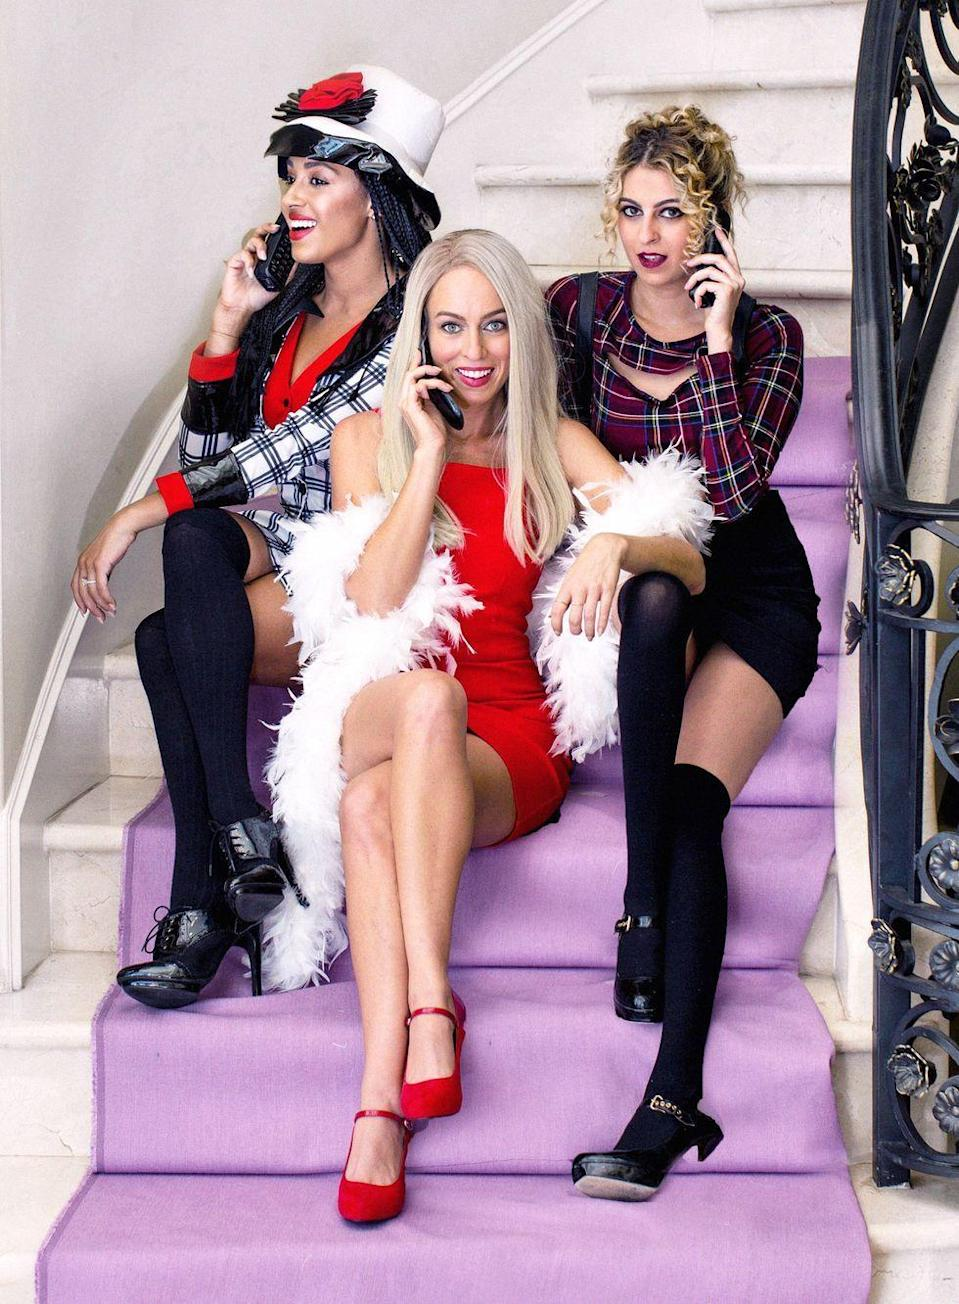 """<p>Got two friends and a few old-school cellphones? You're nearly ready to embody Cher, Dionne, and Tai—just add over-the-knee socks.</p><p><strong>Get the tutorial at <a href=""""https://www.sydnestyle.com/2017/10/clueless-halloween-group-diy-adult-costume-idea/"""" rel=""""nofollow noopener"""" target=""""_blank"""" data-ylk=""""slk:Sydne Style"""" class=""""link rapid-noclick-resp"""">Sydne Style</a>.</strong></p><p><a class=""""link rapid-noclick-resp"""" href=""""https://go.redirectingat.com?id=74968X1596630&url=https%3A%2F%2Fwww.walmart.com%2Fsearch%2F%3Fquery%3Dknee%2Bsocks&sref=https%3A%2F%2Fwww.thepioneerwoman.com%2Fhome-lifestyle%2Fcrafts-diy%2Fg37066817%2Fhalloween-costumes-for-3-people%2F"""" rel=""""nofollow noopener"""" target=""""_blank"""" data-ylk=""""slk:SHOP KNEE SOCKS""""><strong>SHOP KNEE SOCKS</strong></a></p>"""